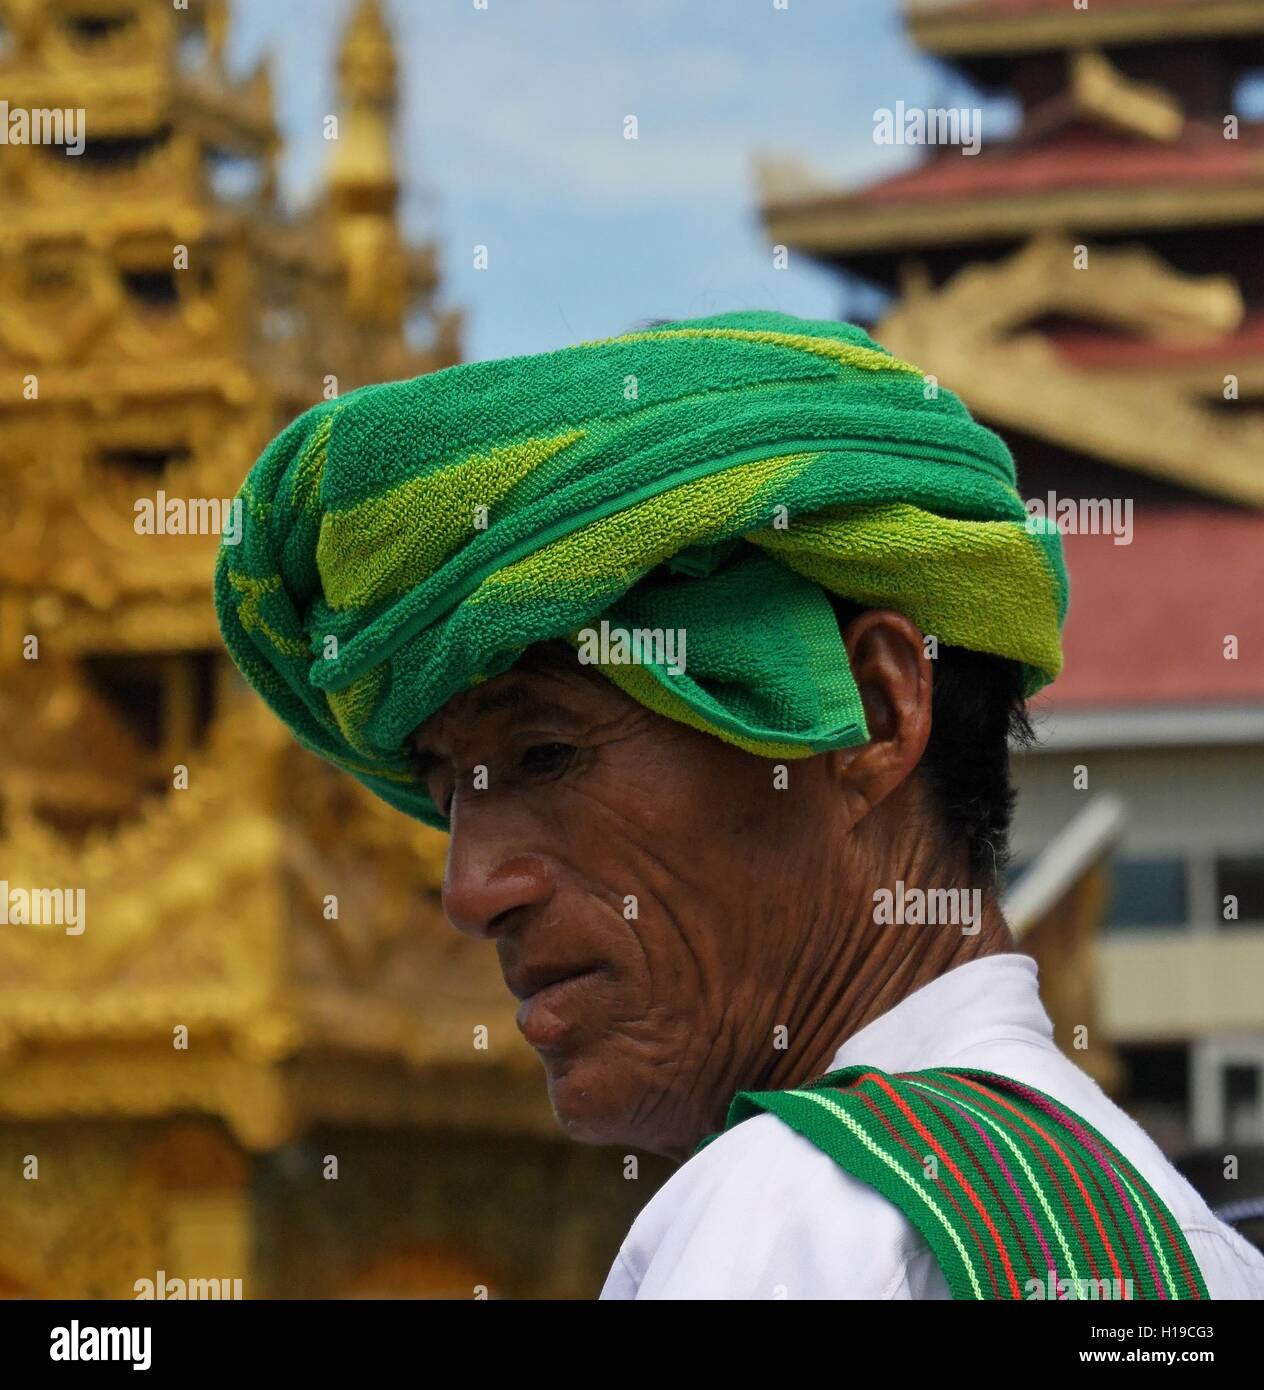 Close-up of Pa-O man wearing typical headdress of that ethnic group at Phaung Daw Oo Pagoda Festival, Inle Lake, Shan State, Myanmar (Burma) Stock Photo